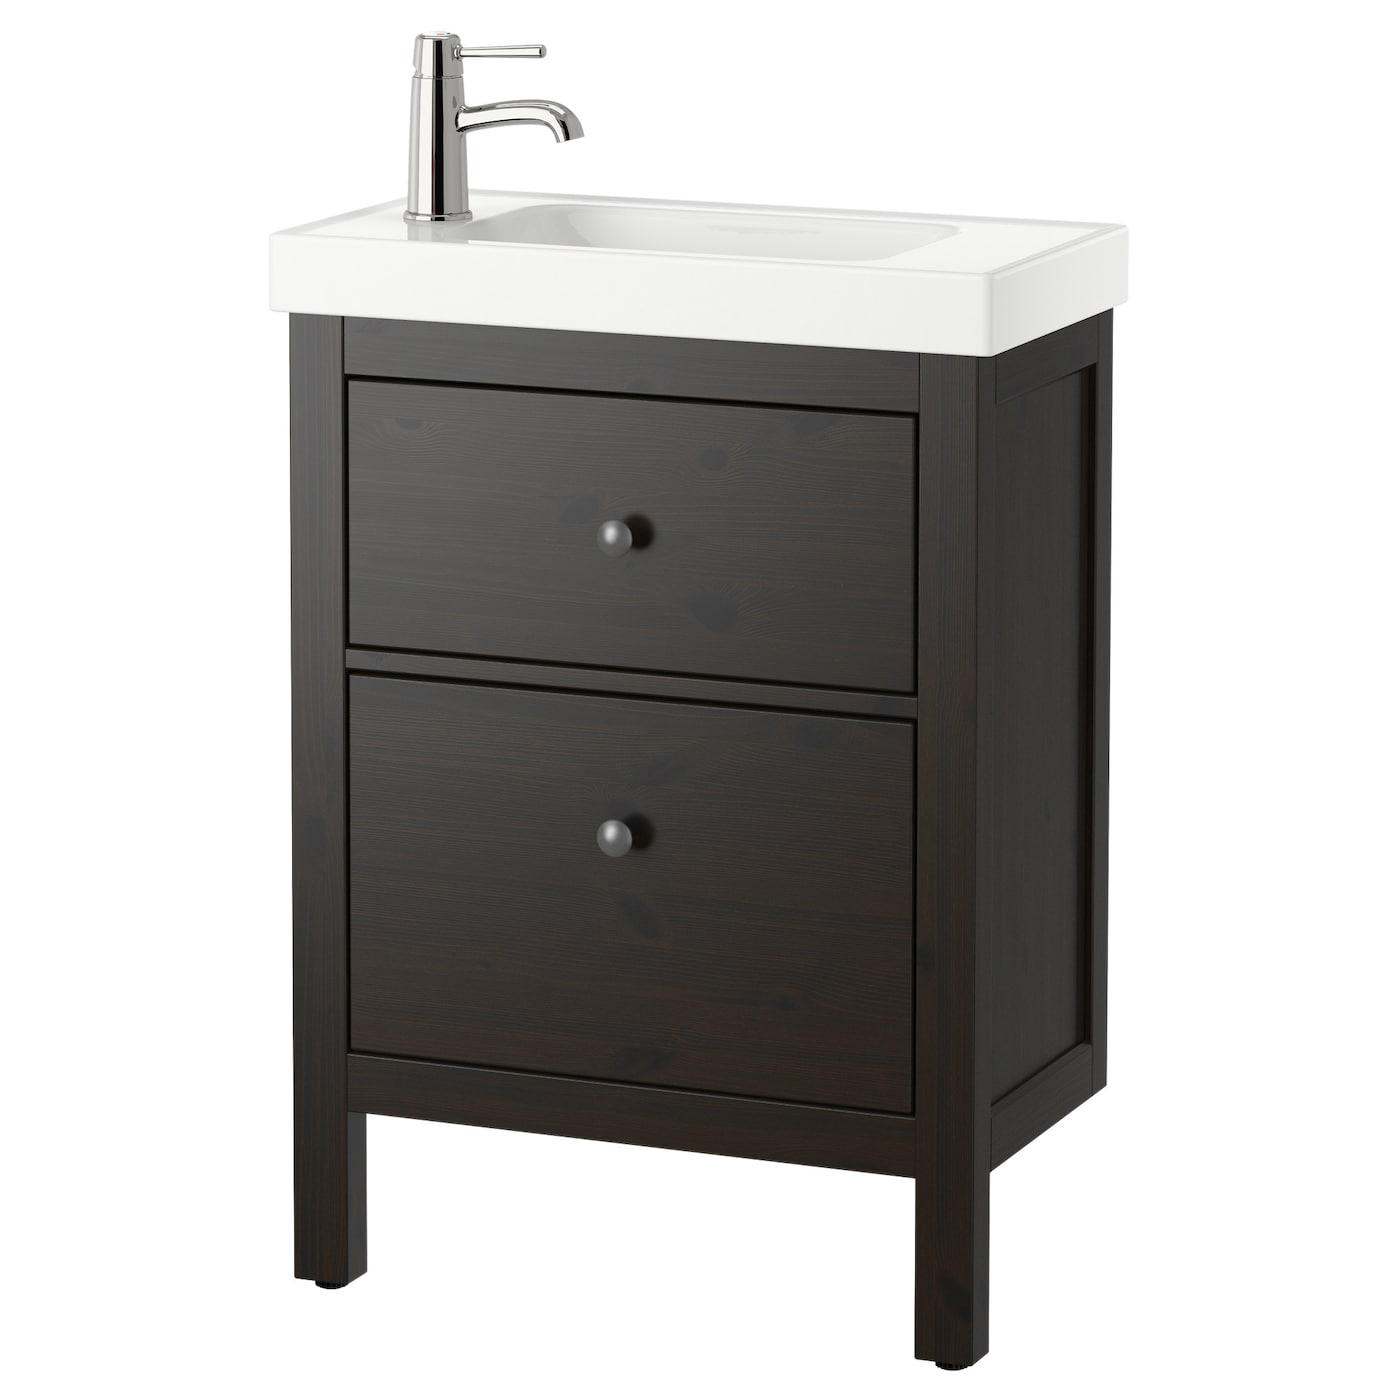 bathroom vanity units ikea ireland dublin. Black Bedroom Furniture Sets. Home Design Ideas